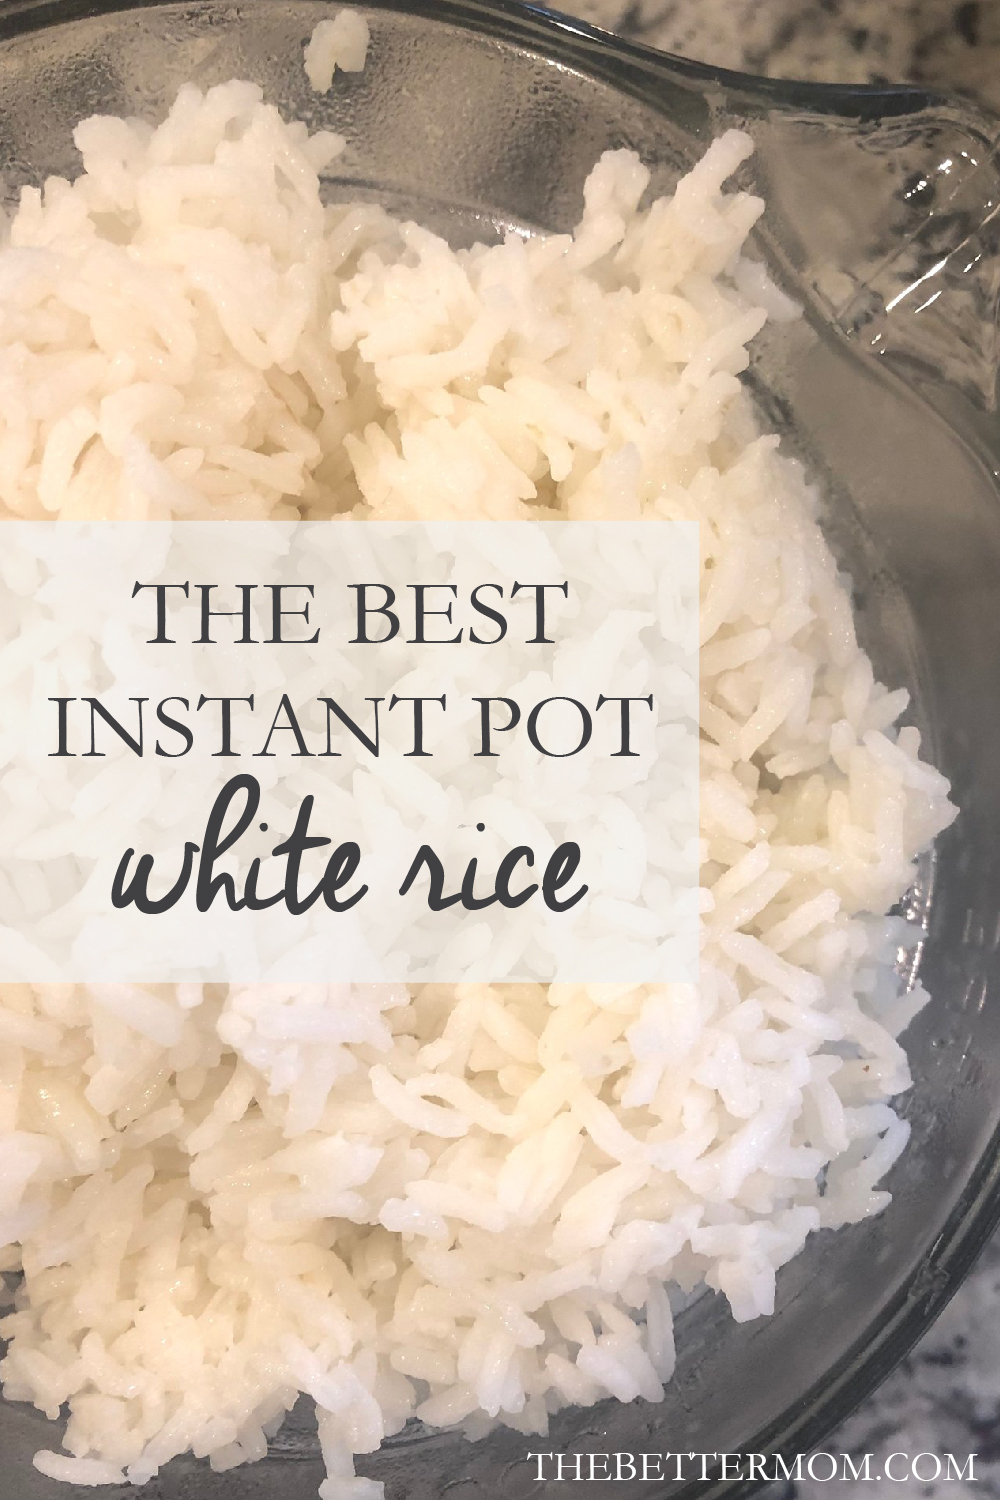 If you have an Instant Pot, I have the perfect quick, easy and delicious rice recipe I'm sharing today!!